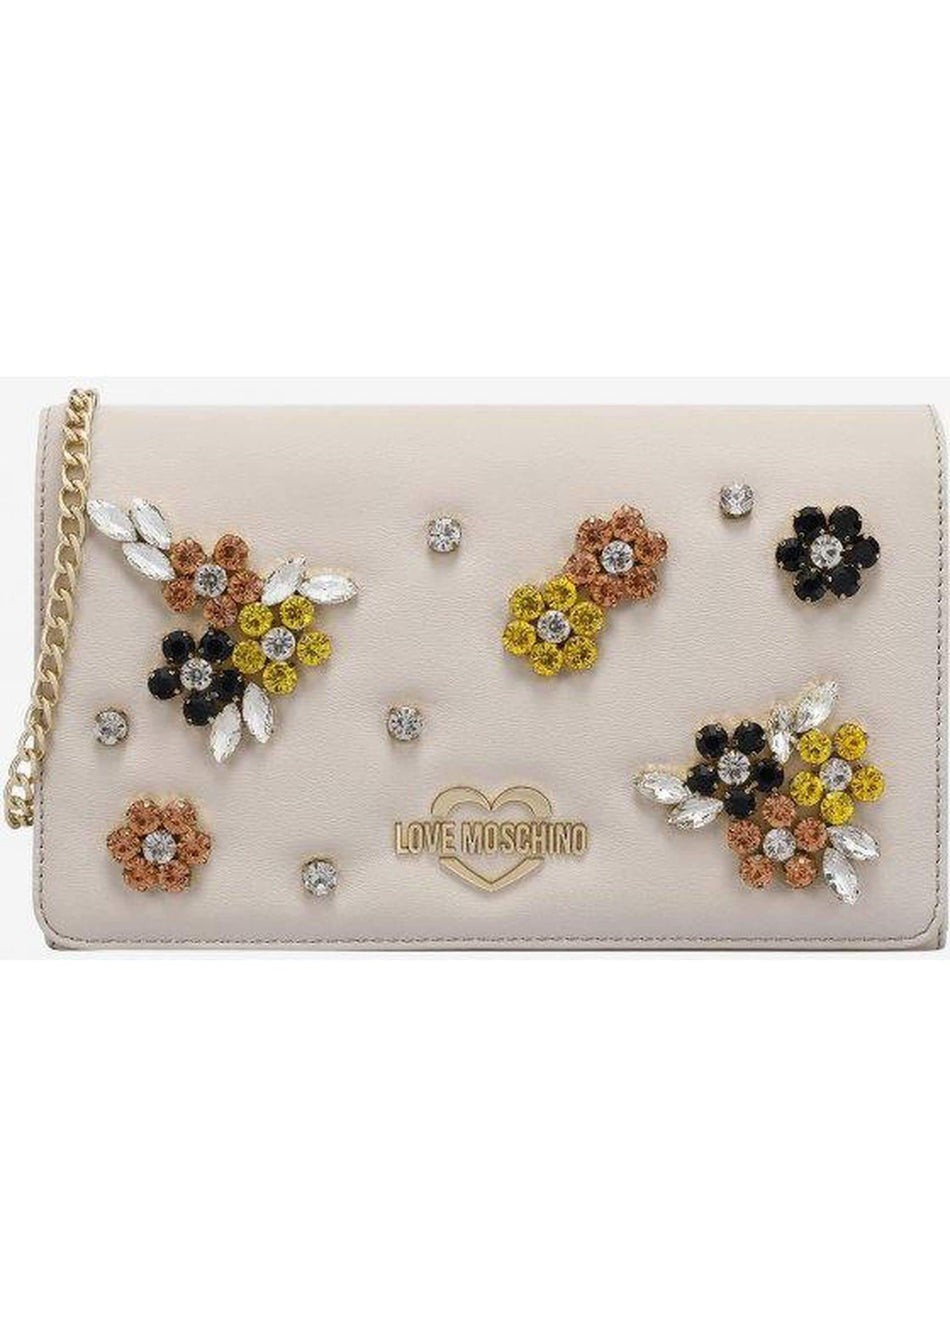 evening bag in ecopelle con fiori in cristalli LOVE MOSCHINO - Vittorio Citro Boutique